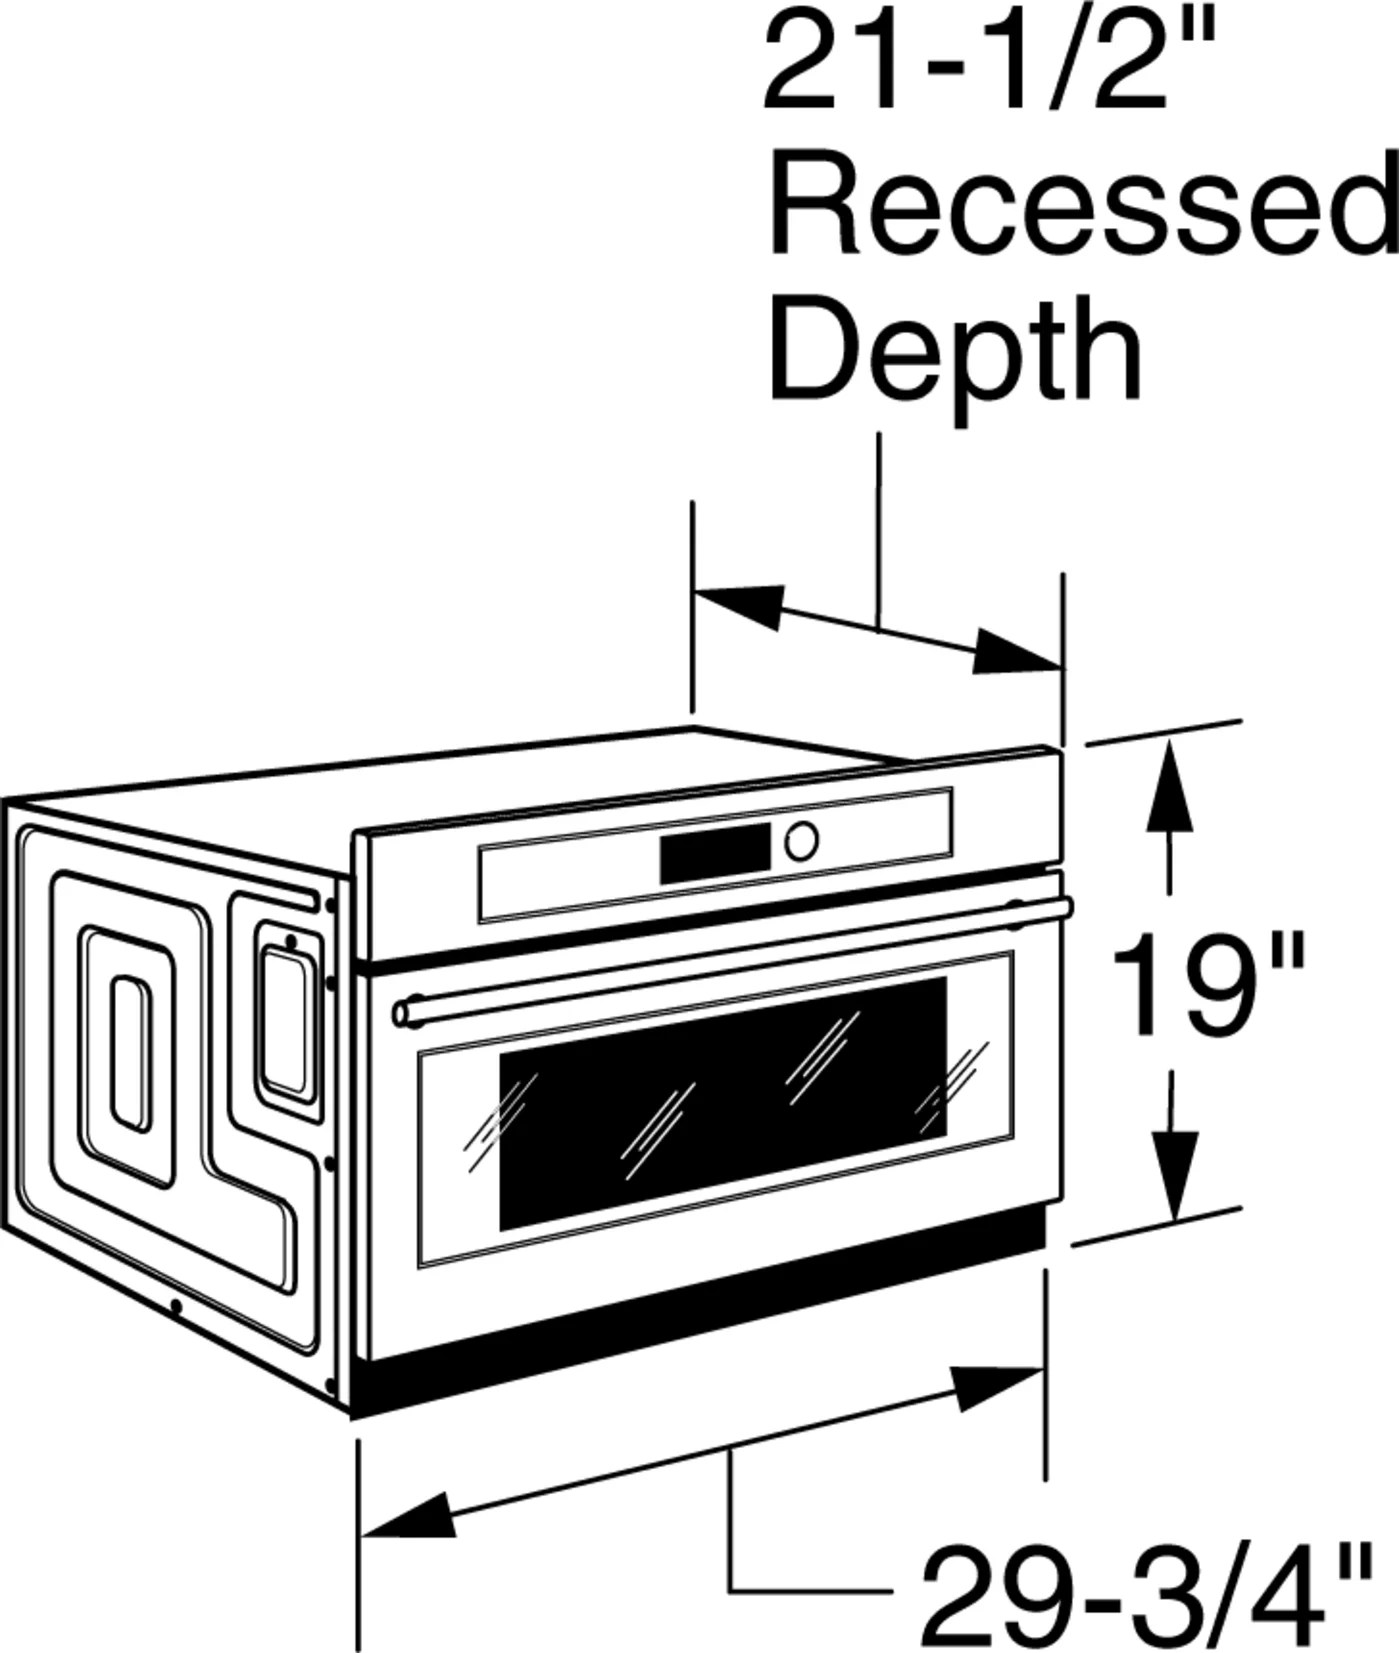 Kelvinator Wall Oven Wiring Diagram - Wiring Diagrams on